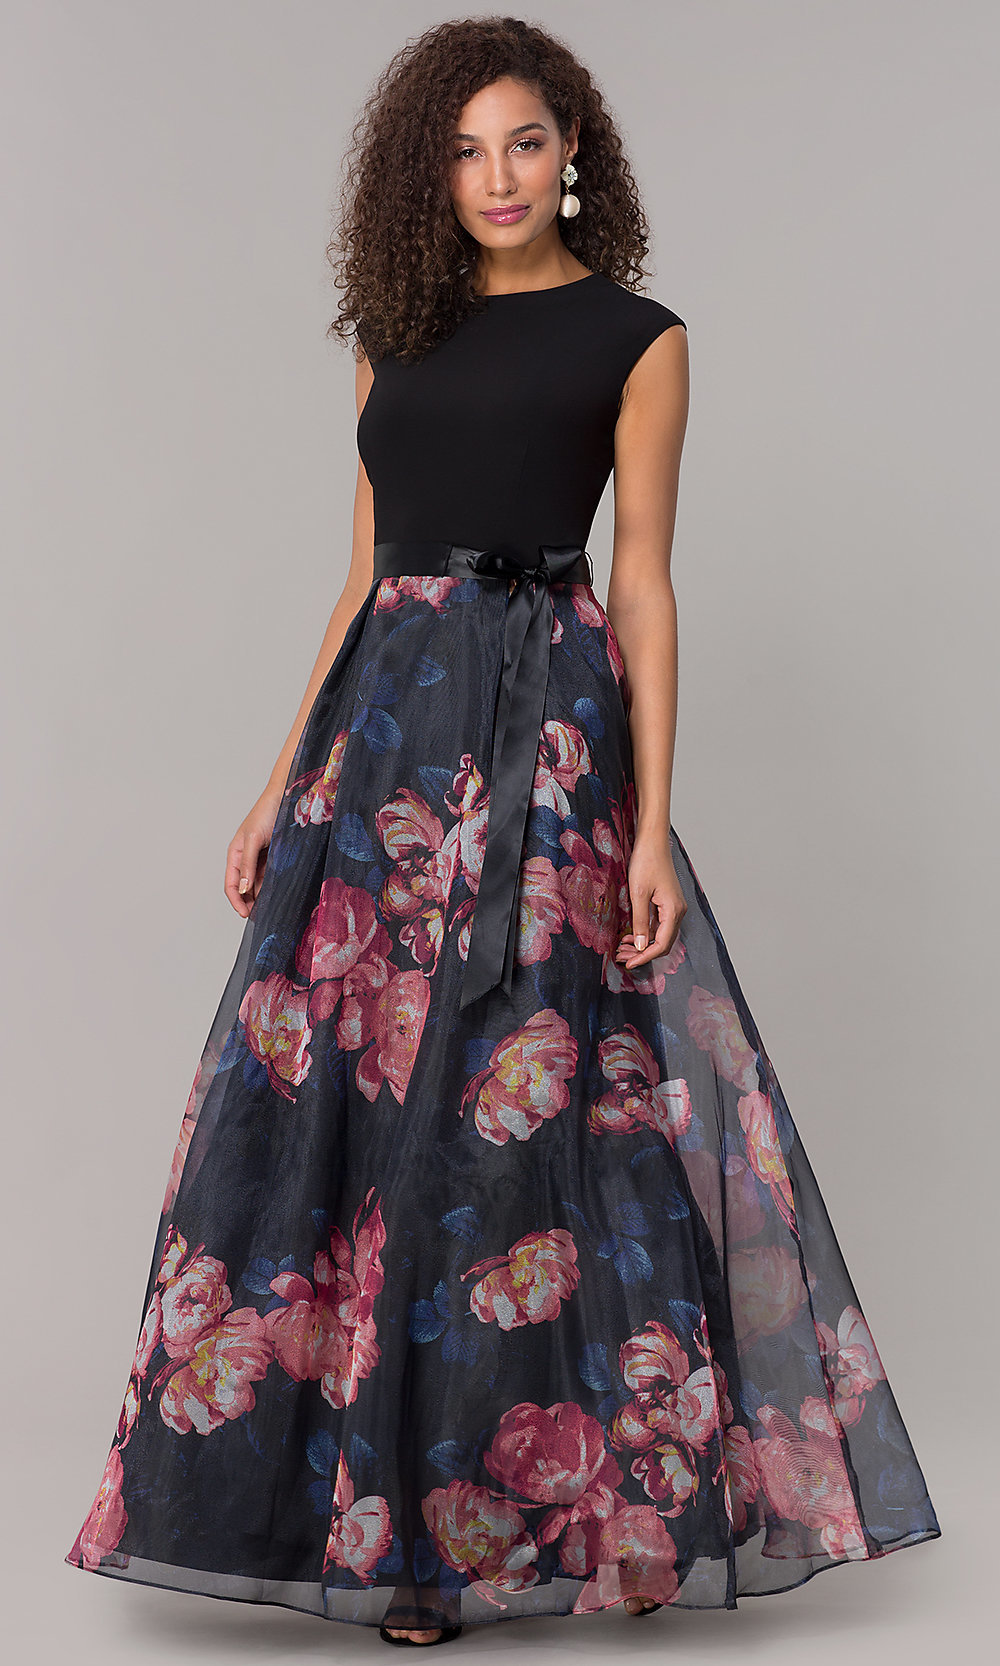 Long Formal Wedding-Guest Dress with Floral Print